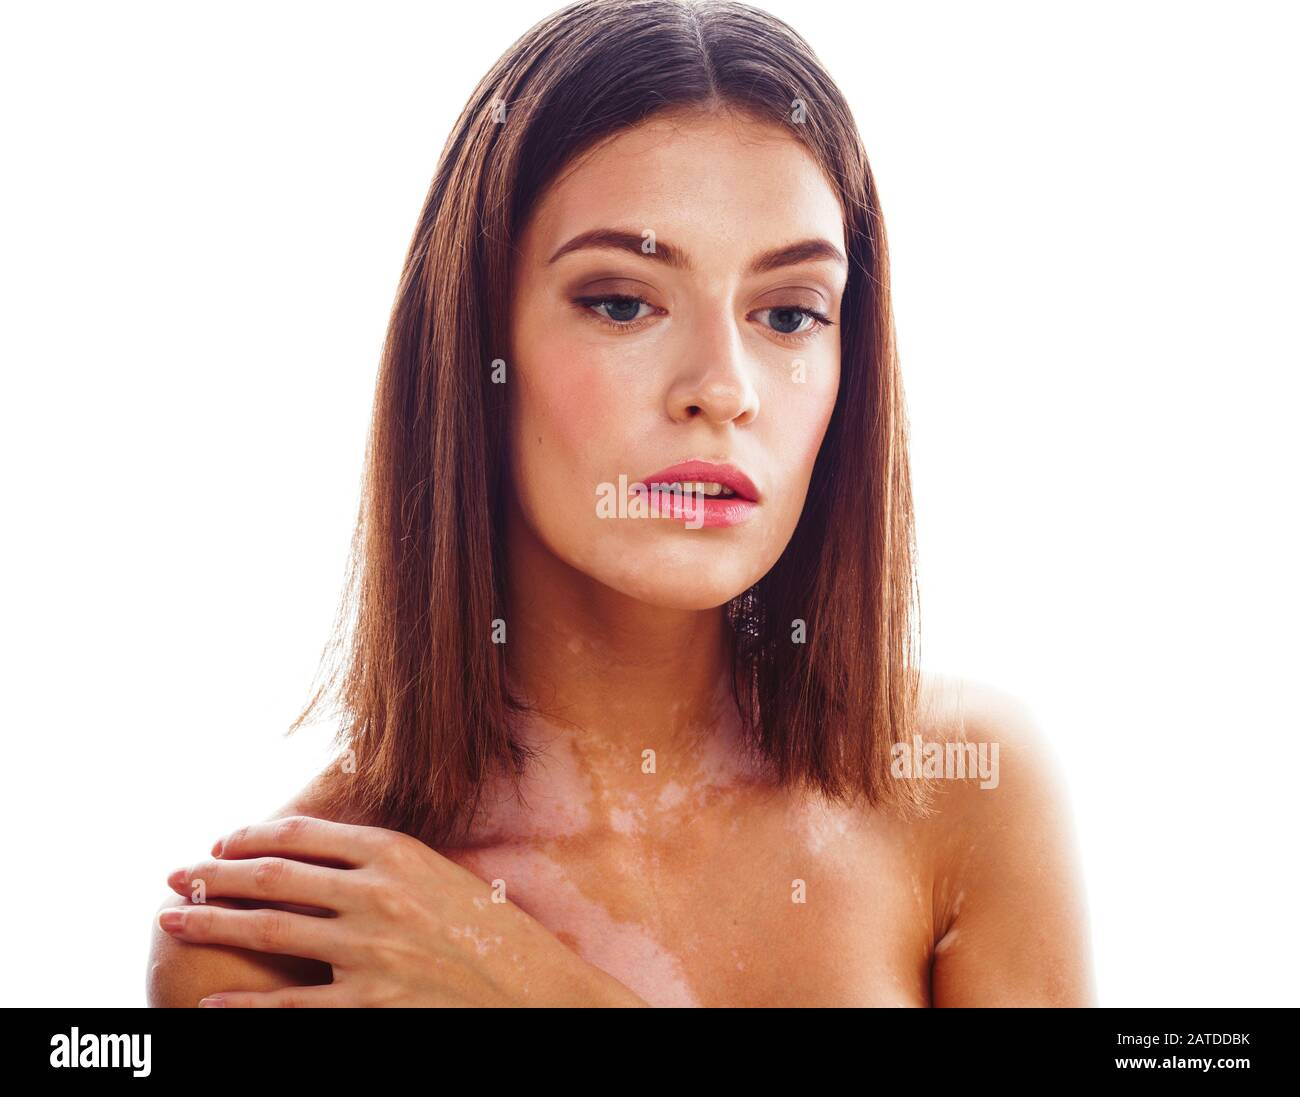 Beautiful Young Brunette Woman With Vitiligo Disease Close Up Isolated On White Positive Smiling Model Problems Concept Bad Tan Real Problem Stock Photo Alamy